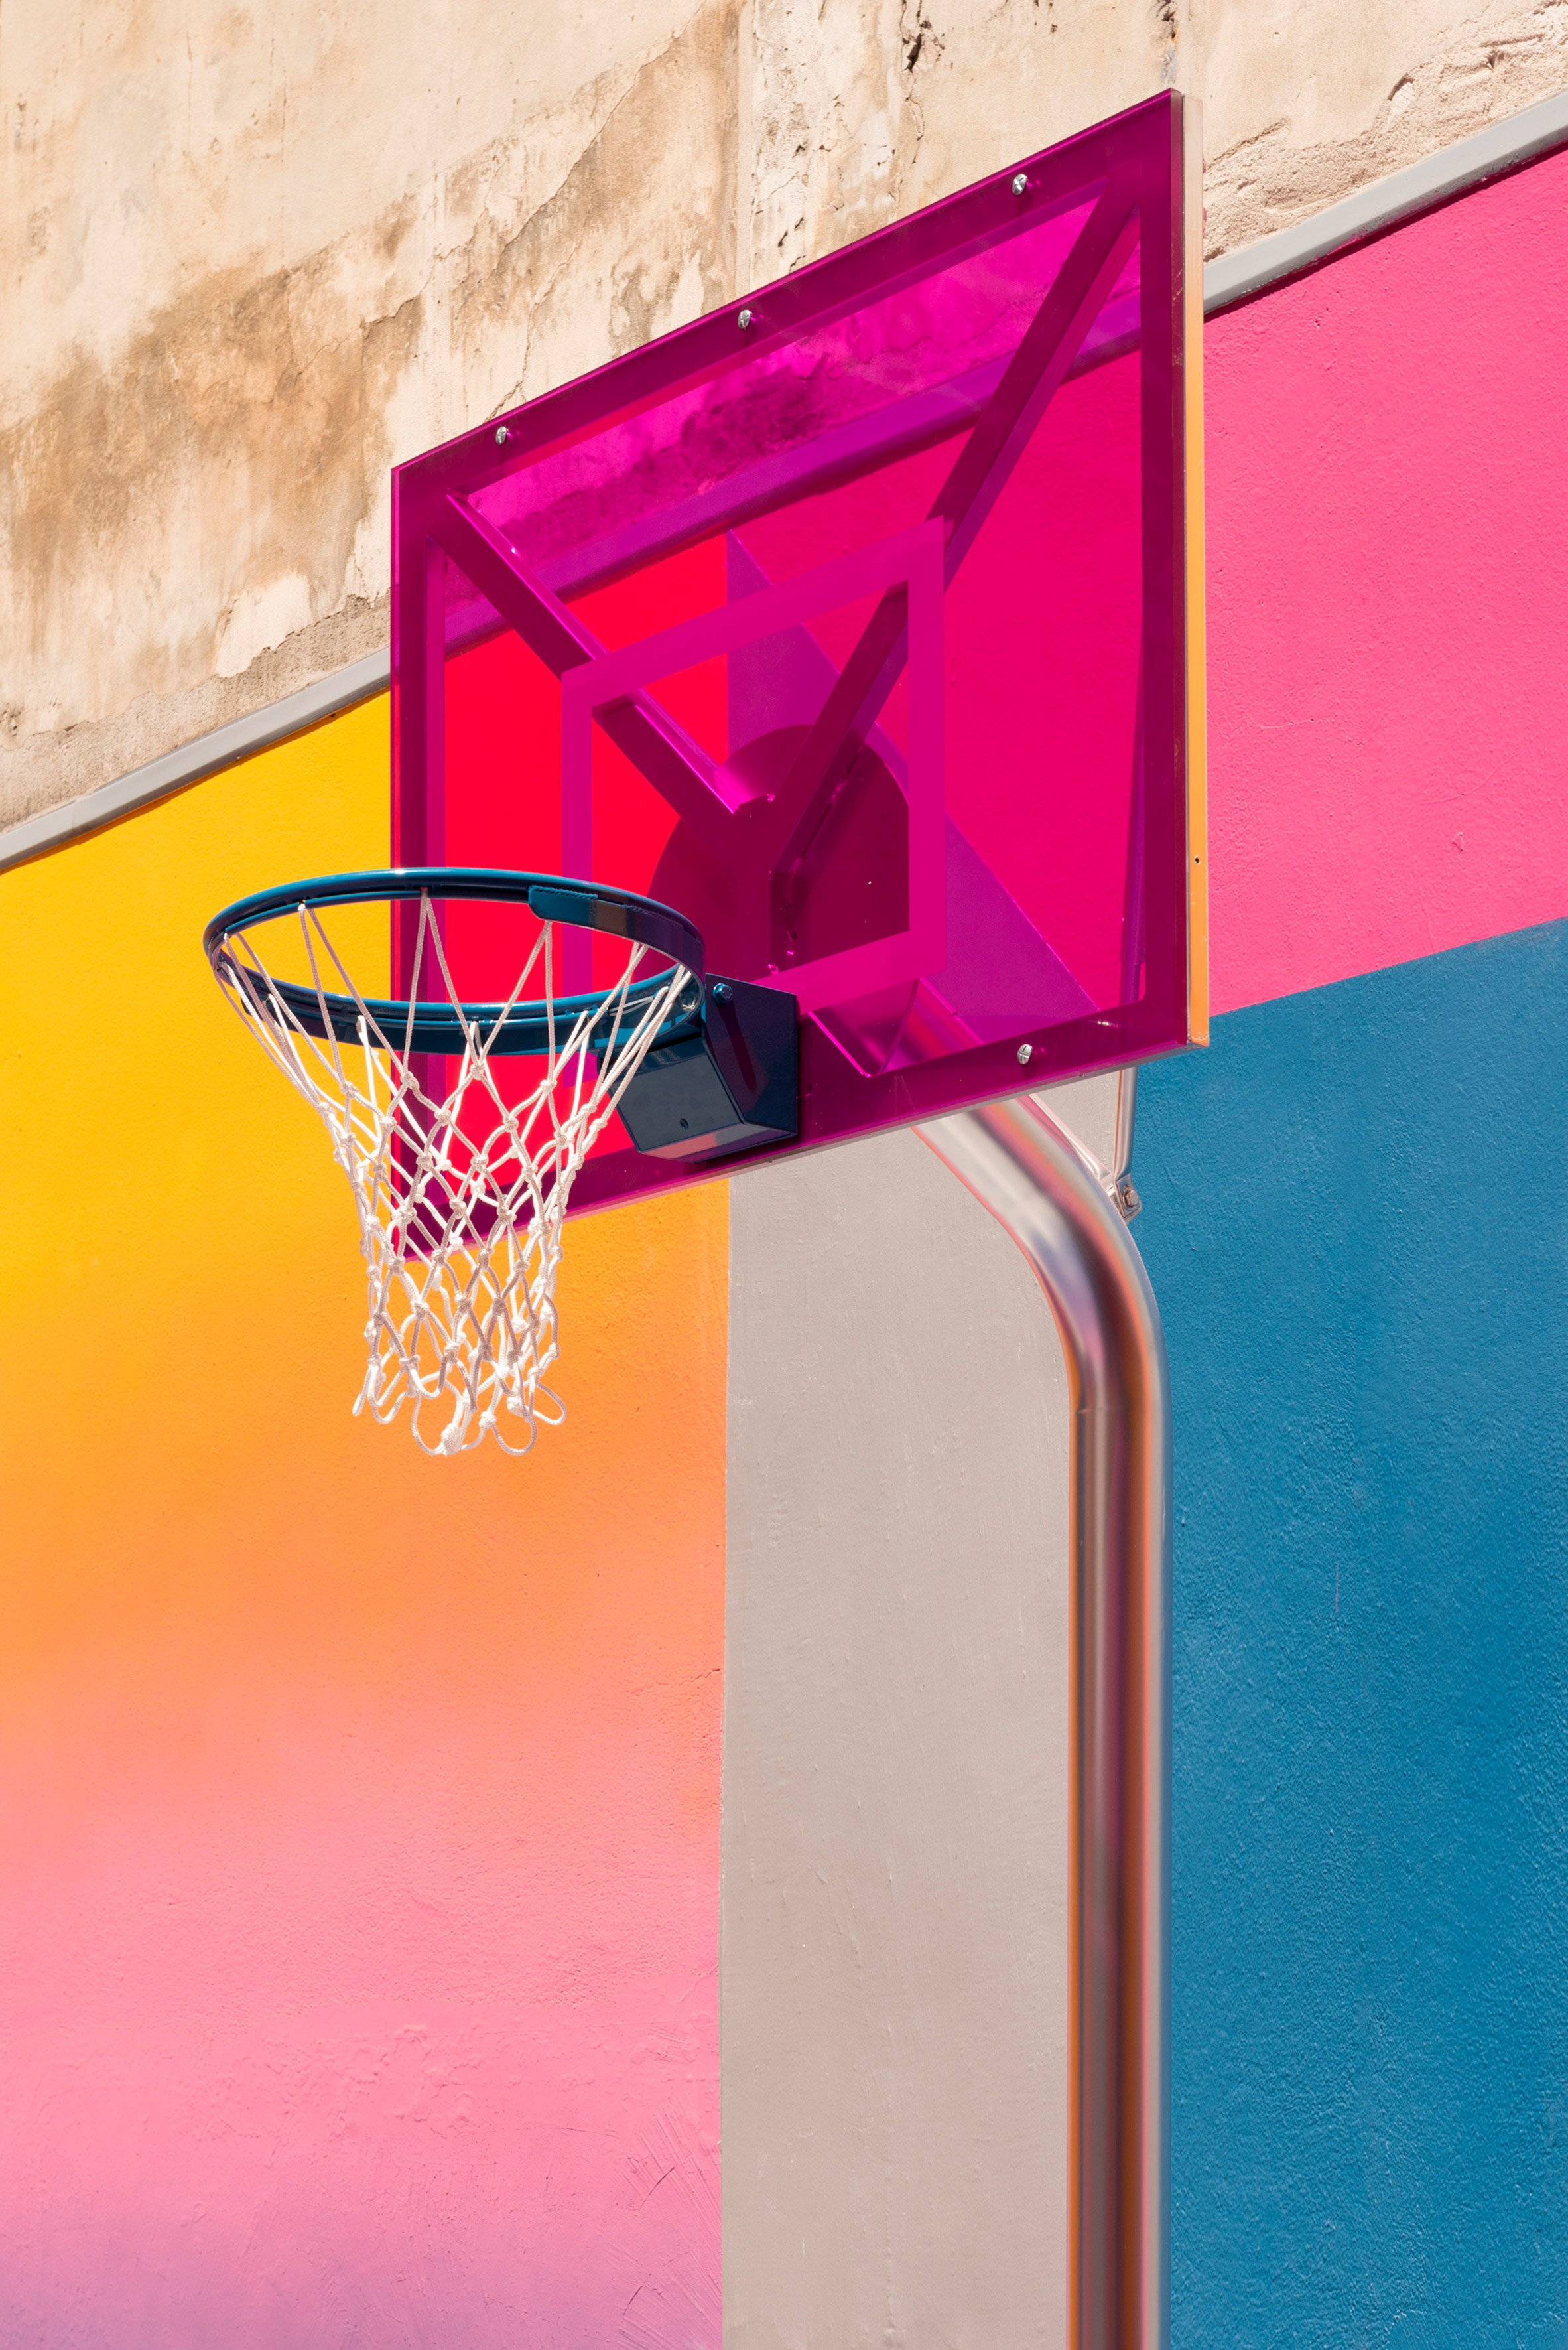 basket-court-pigalle-studio-architecture-public-leisure-paris-france-_dezeen_2364_col_7.jpg